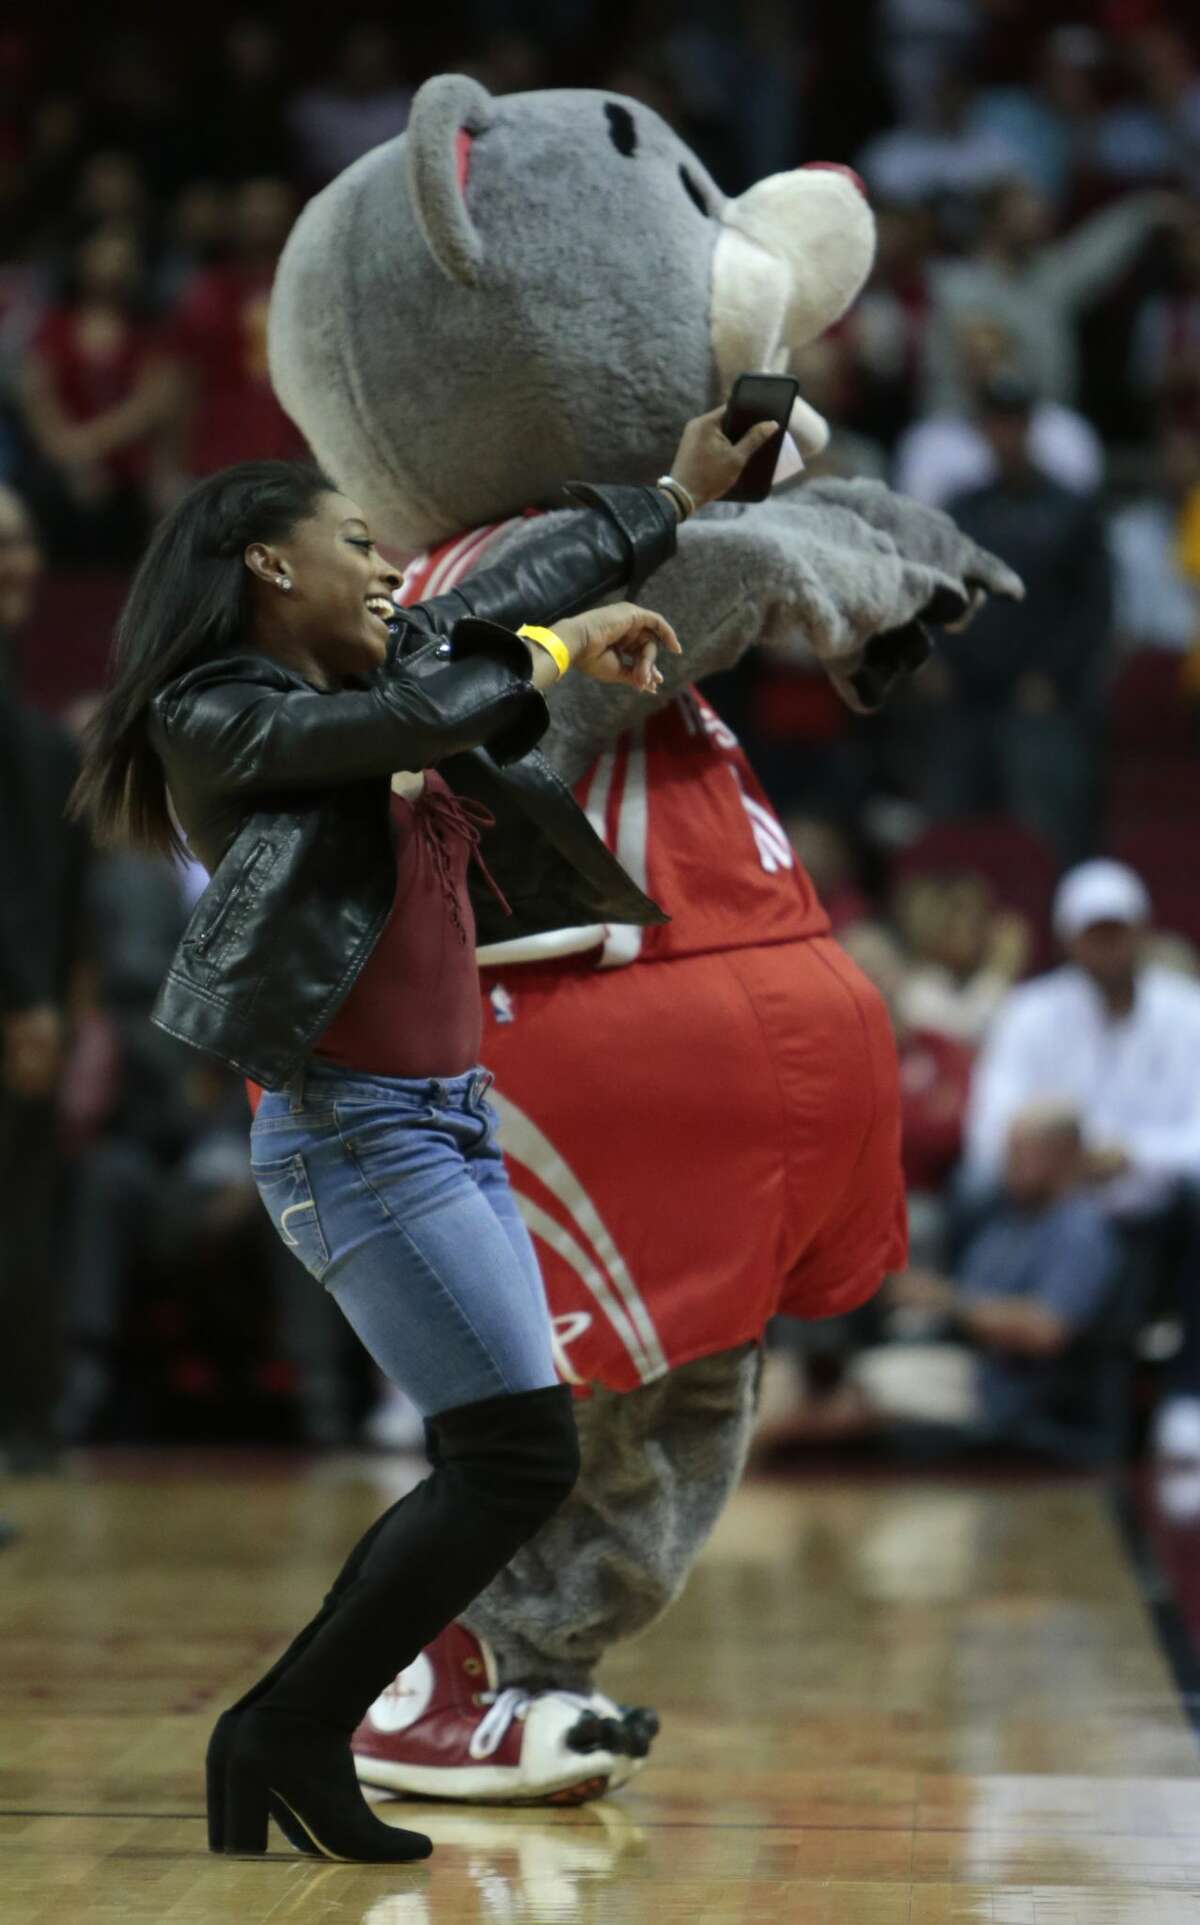 Olympic gold medalist Simone Biles, left, dances with Houston Rockets mascot Clutch during a time out in the fourth quarter of an NBA basketball game between the Rockets and the Utah Jazz at Toyota Center on Wednesday, March 8, 2017, in Houston. ( Brett Coomer / Houston Chronicle )